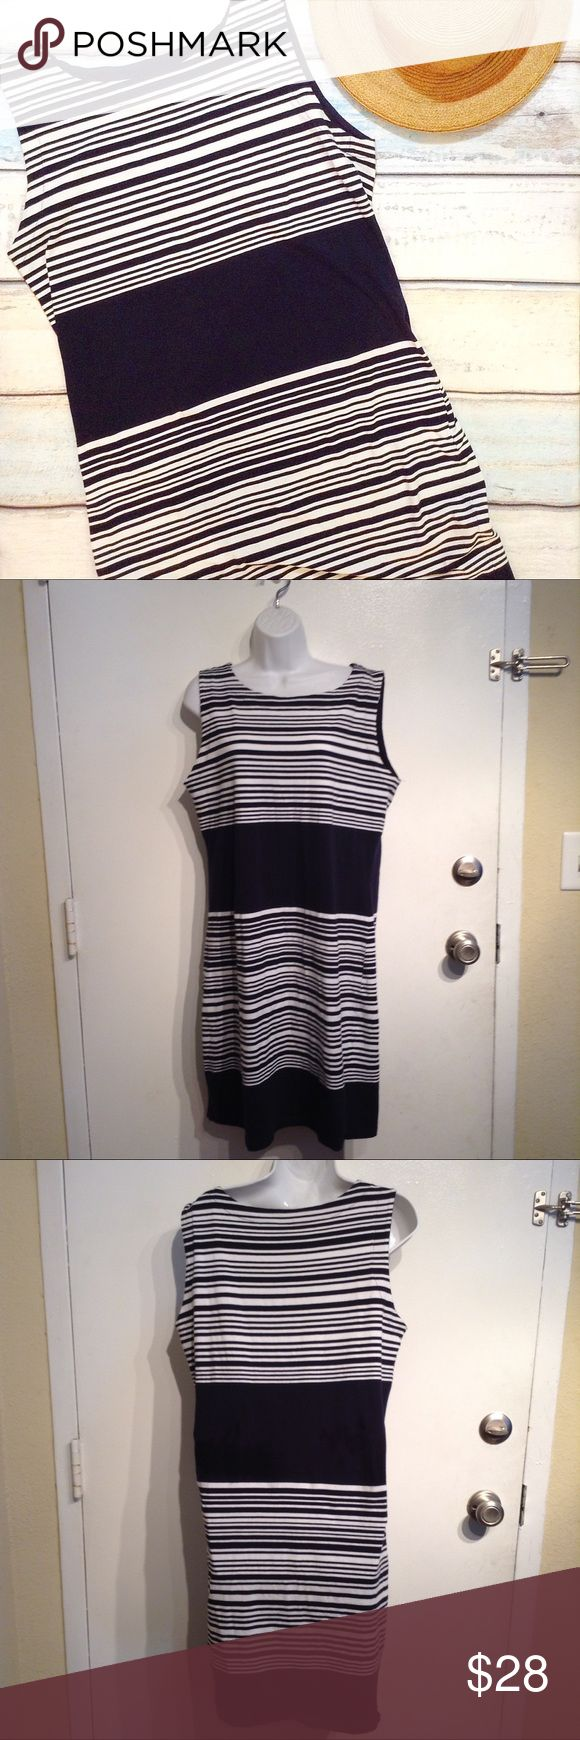 "Navy Line Plus Size Nautical Striped Dress Navy Line plus size navy blue and white nautical striped dress. Very stretchy. Size XXL. Measures 20"" flat from armpit to armpit and 38"" shoulder to hem. Perfect for wearing to the beach, 4th of July, or a summer BBQ. No modeling. Smoke free home. I do discount bundles. Navy Line Dresses"